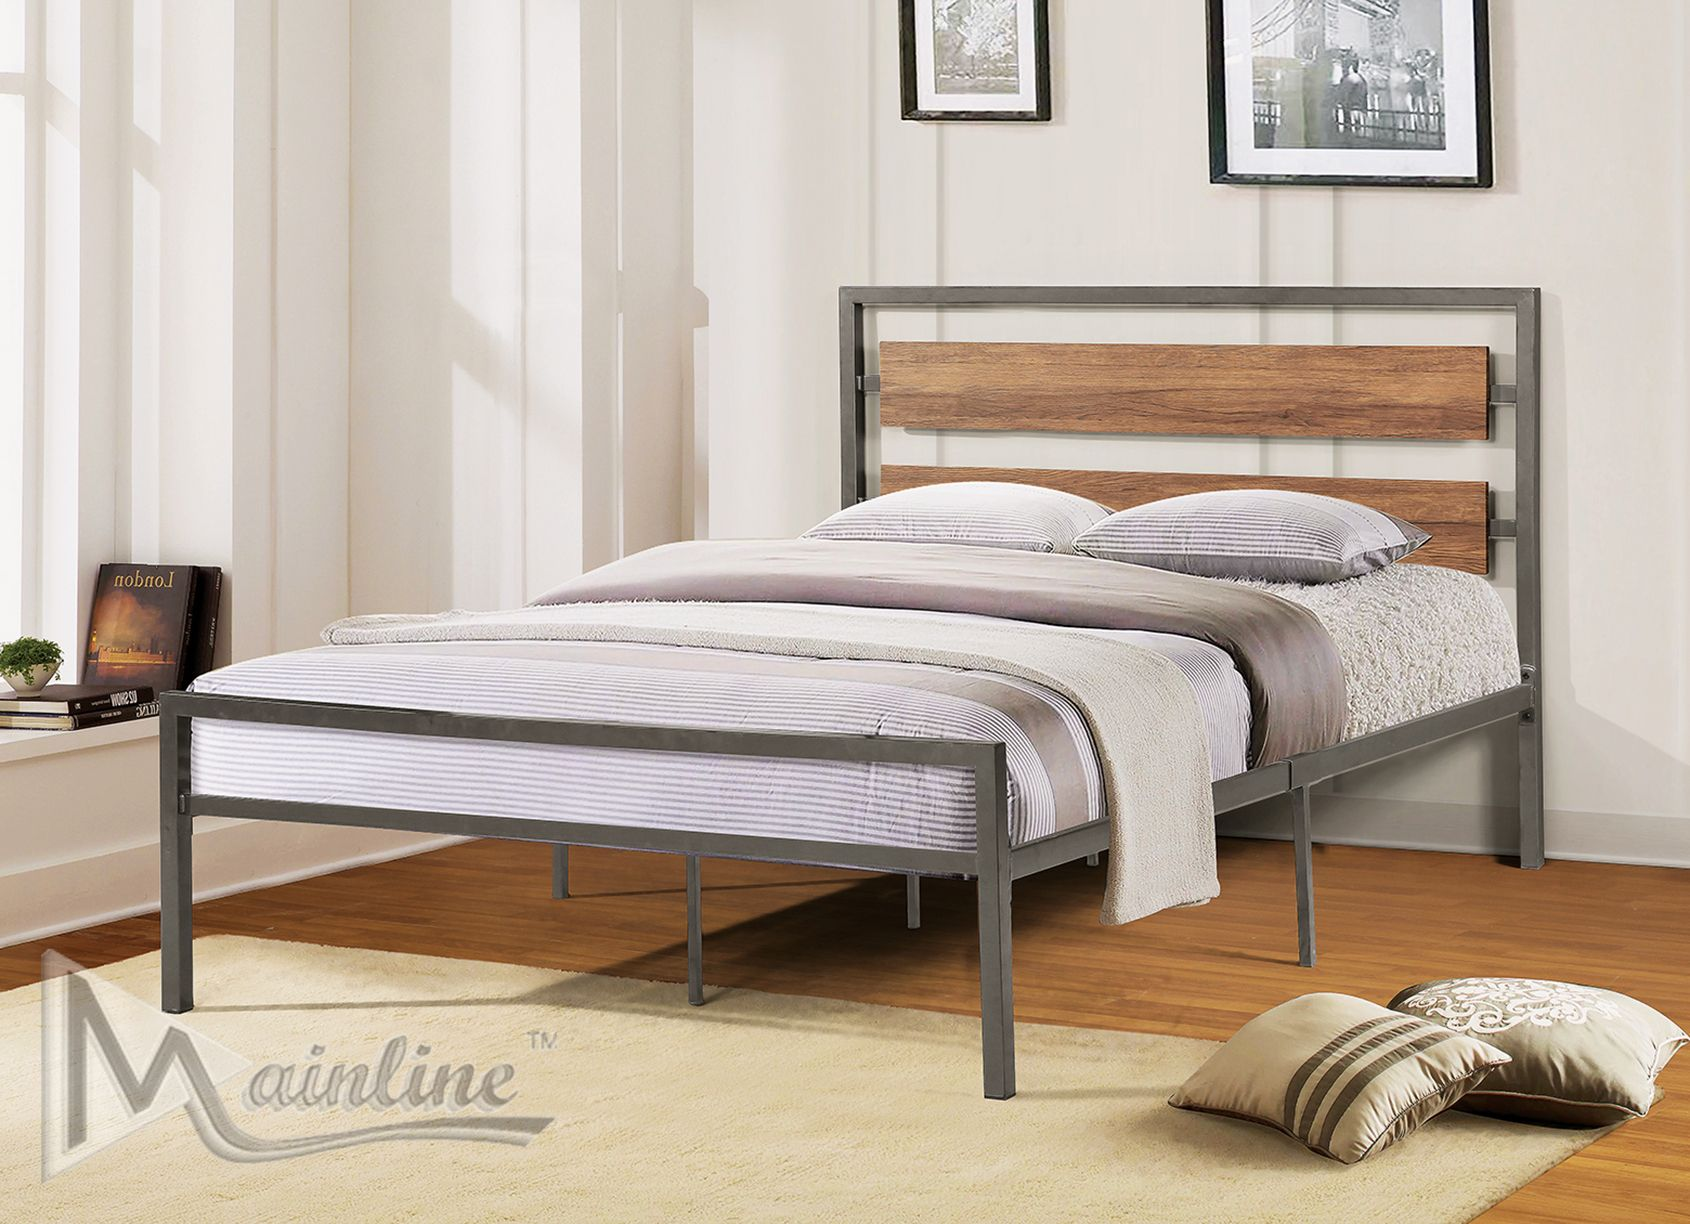 Gridiron Twin Size Bed In 2020 Bed Queen Size Bedding Platform Bed